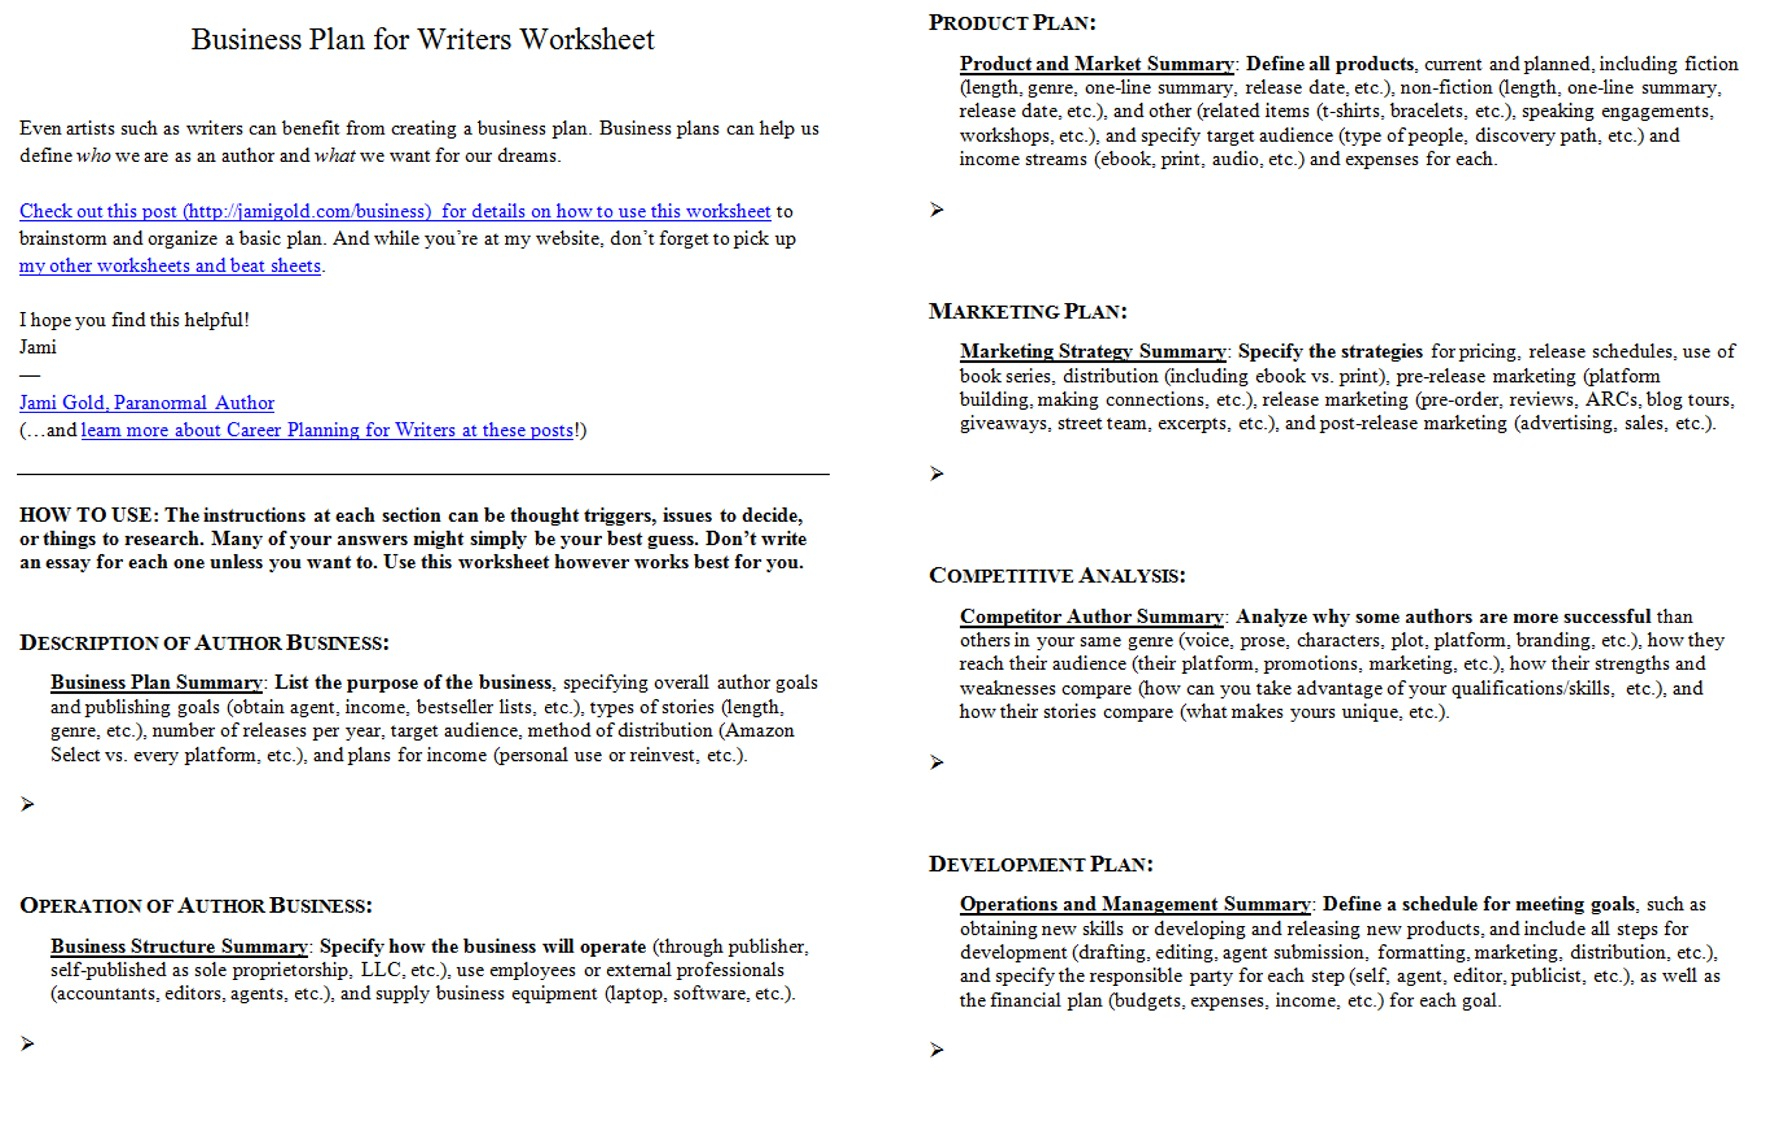 Weirdmailus  Picturesque Worksheets For Writers  Jami Gold Paranormal Author With Outstanding Screen Shot Of Both Pages Of The Business Plan For Writers Worksheet With Alluring Worksheet Kids Also Graphs Charts And Tables Worksheets In Addition Free Fraction Worksheets For Th Grade And Area Circle Worksheet As Well As Congruence Of Triangles Class  Worksheets Additionally Free Printable Maths Worksheets For Grade  From Jamigoldcom With Weirdmailus  Outstanding Worksheets For Writers  Jami Gold Paranormal Author With Alluring Screen Shot Of Both Pages Of The Business Plan For Writers Worksheet And Picturesque Worksheet Kids Also Graphs Charts And Tables Worksheets In Addition Free Fraction Worksheets For Th Grade From Jamigoldcom